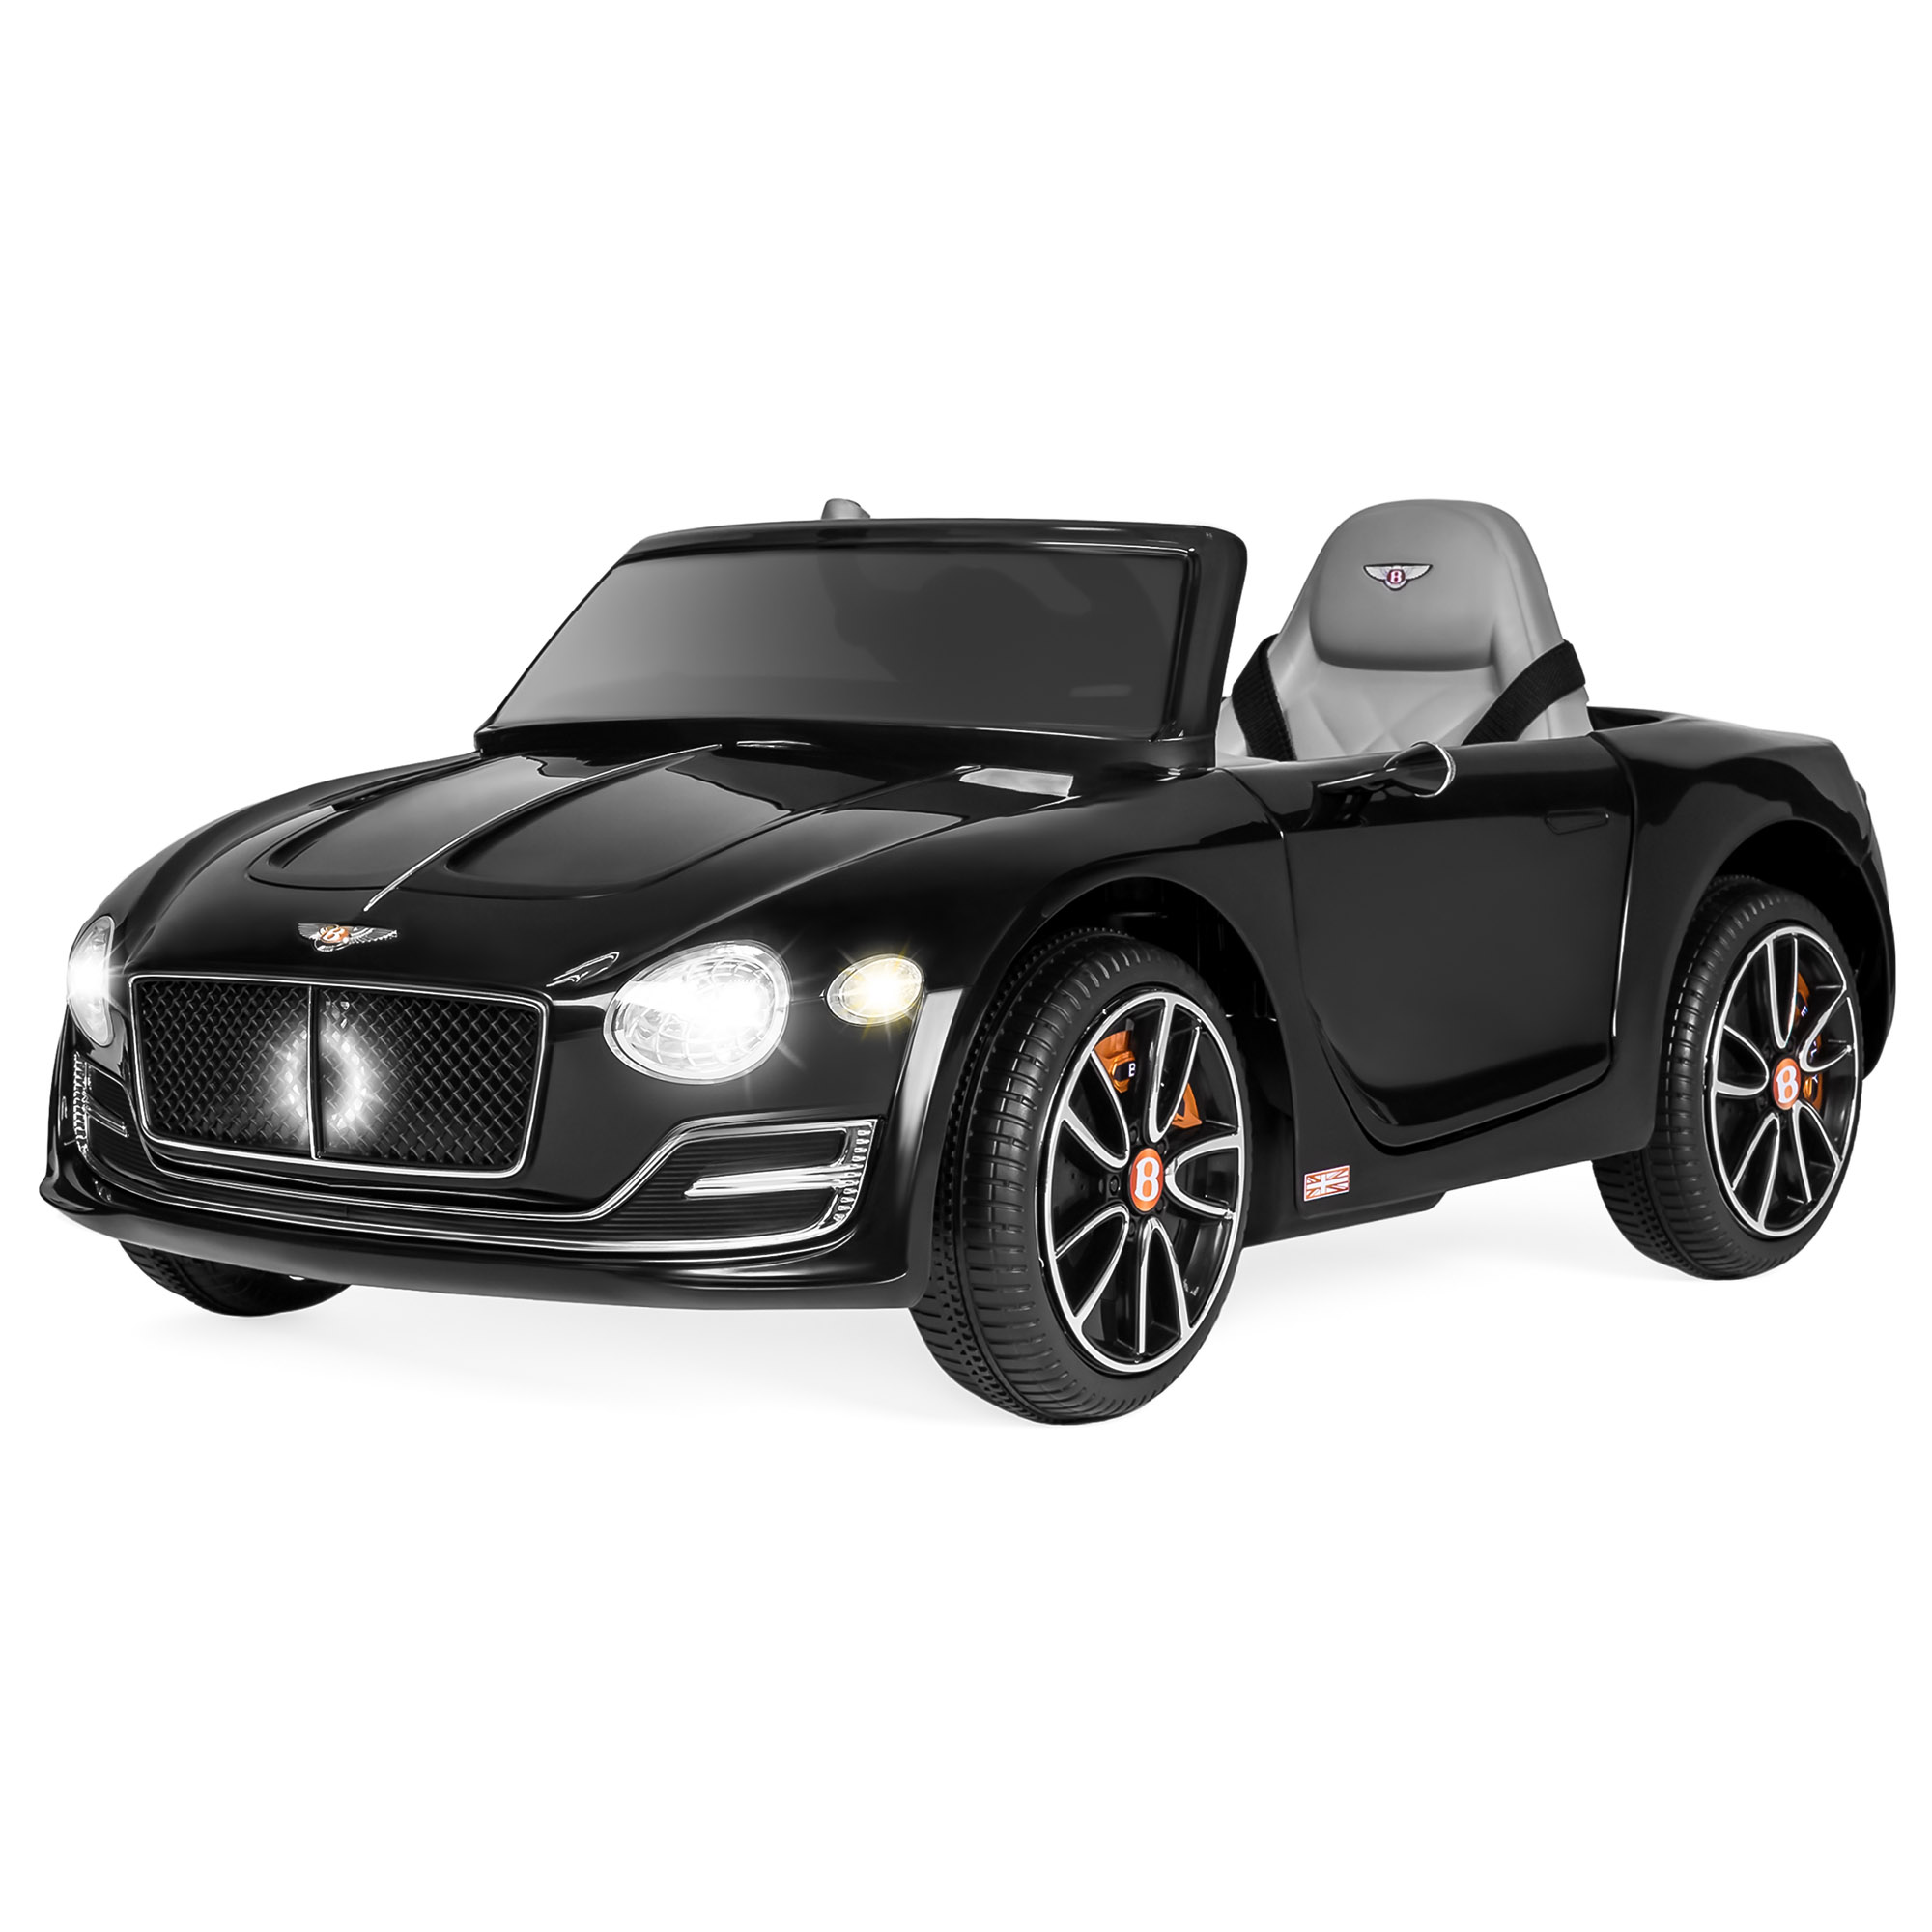 BCP 12V Kids Bentley Ride-On Car w/ Remote Control, 2 Speeds